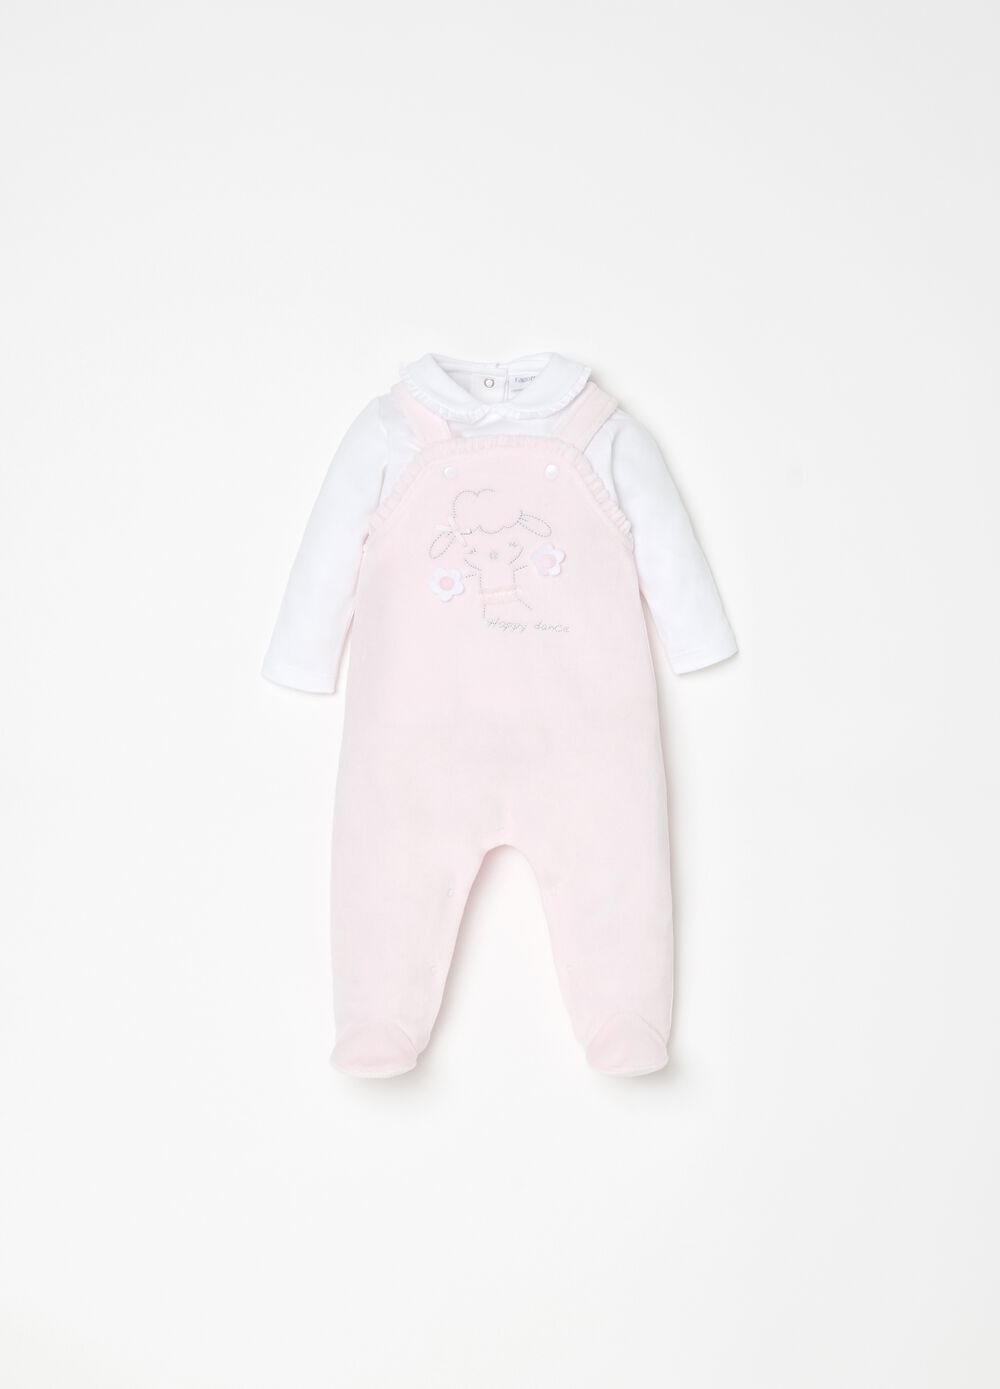 T-shirt and dungarees set with feet and embroidery